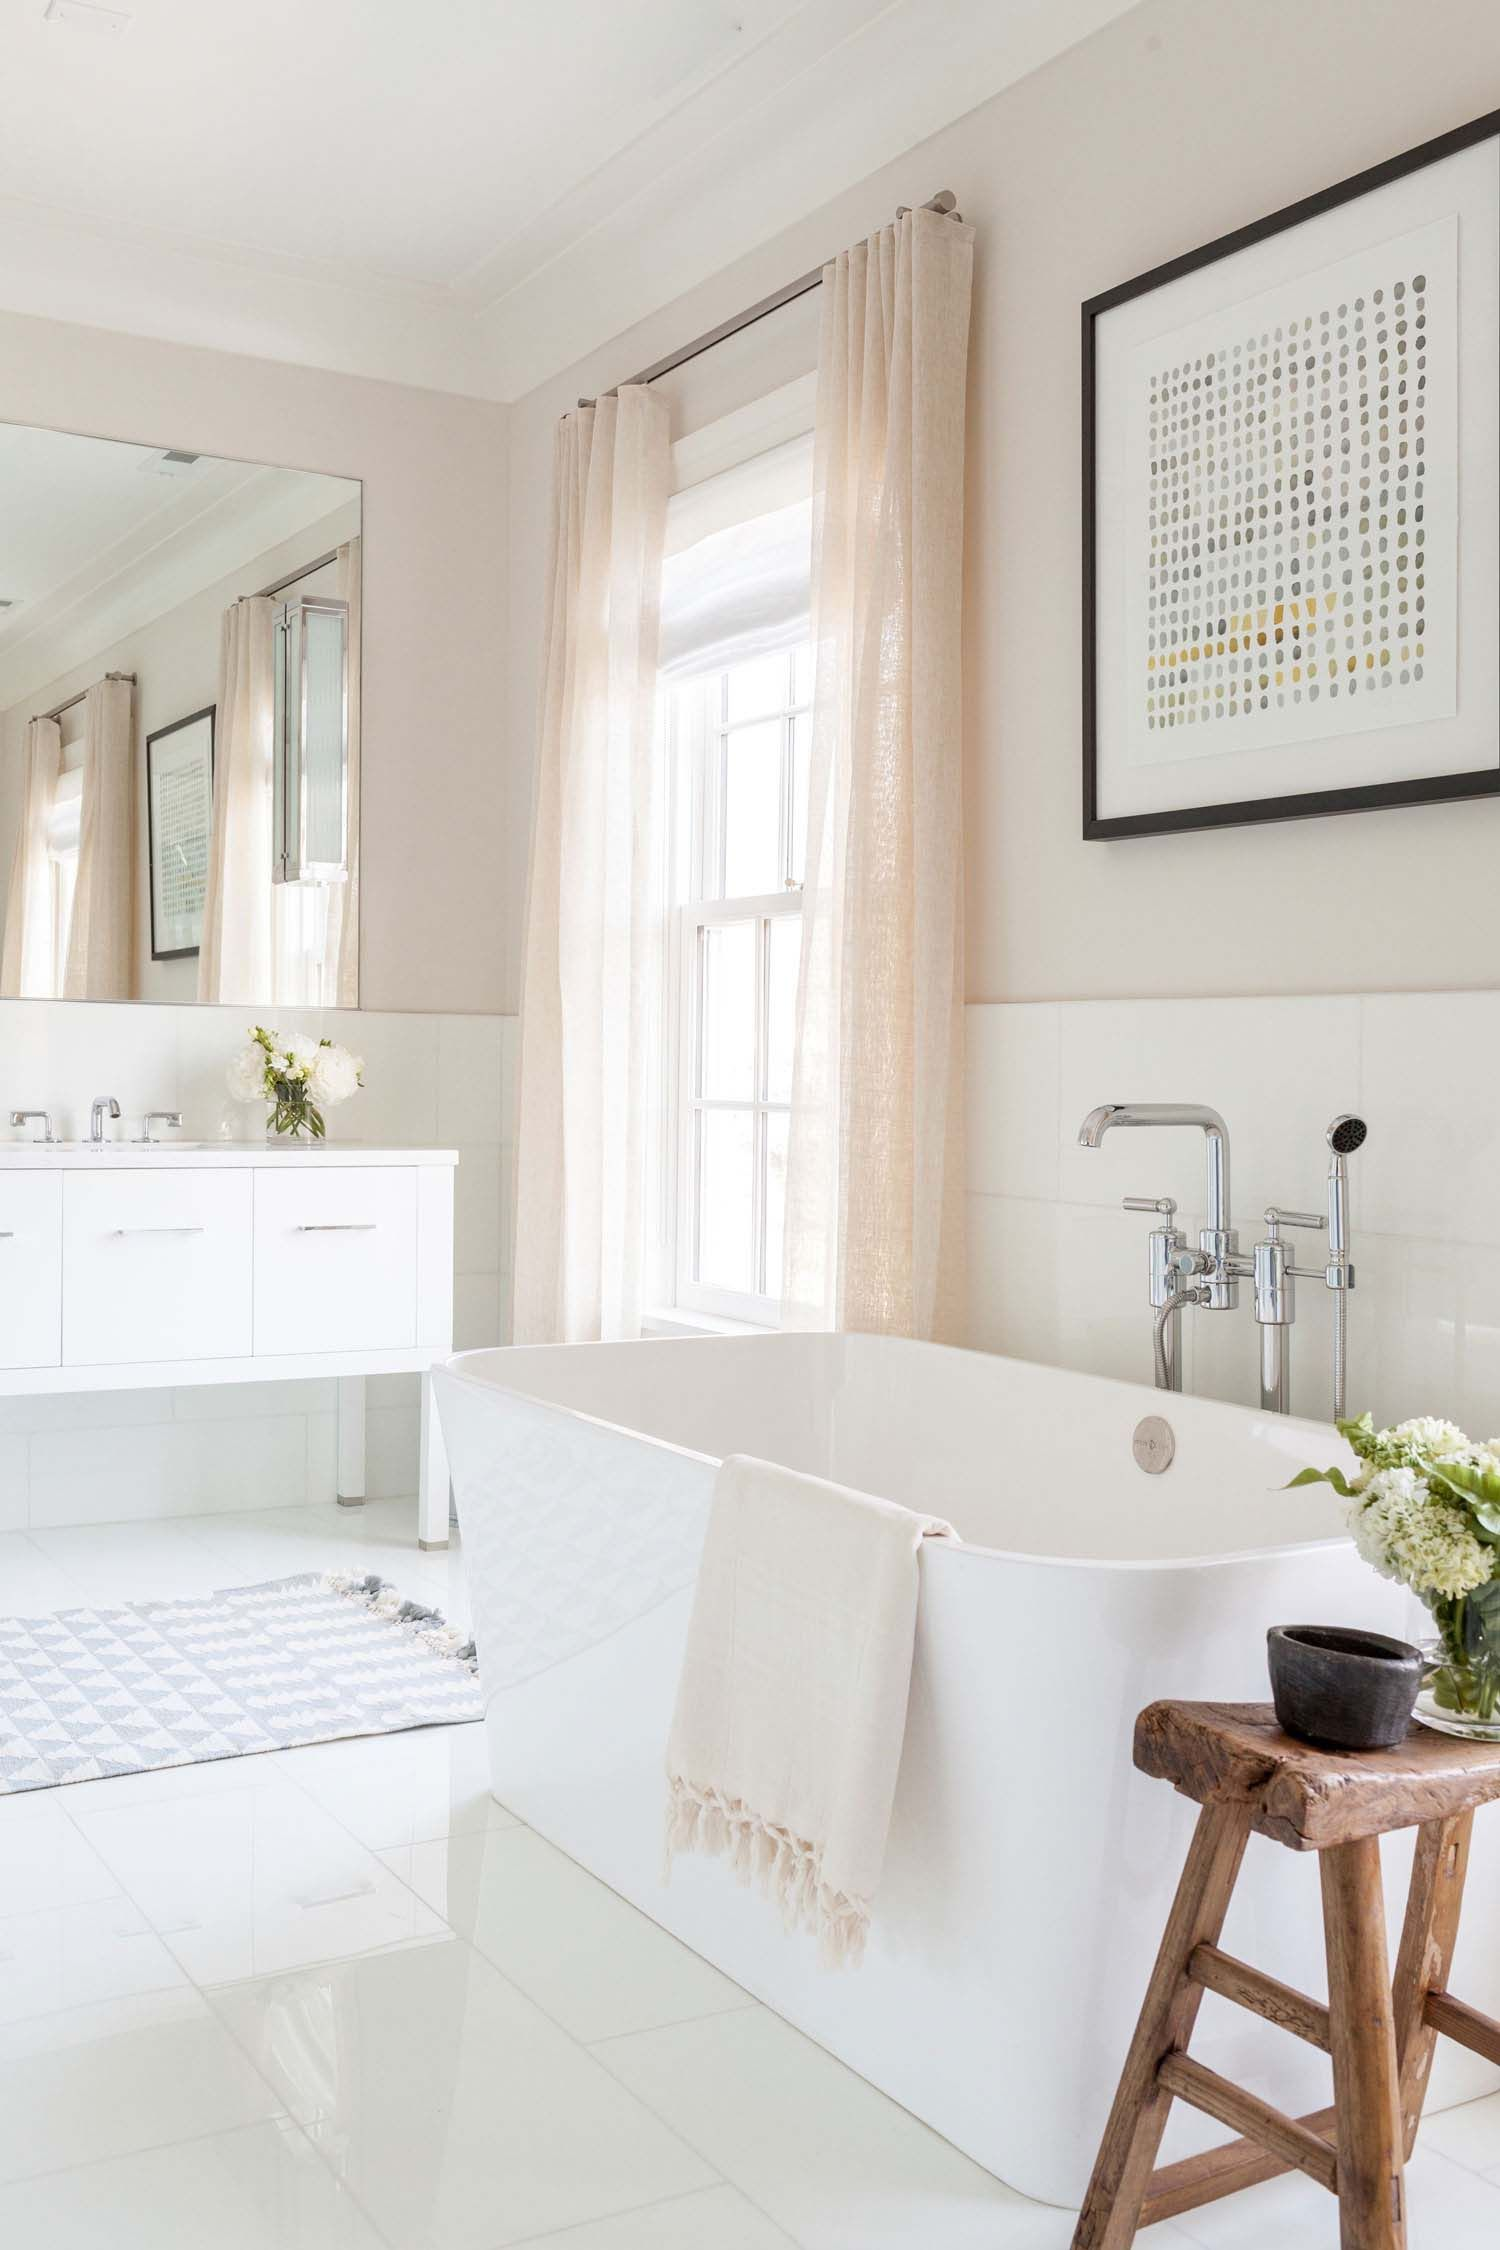 Best Kitchen Gallery: A Modernized Version Of A New England Farmhouse In Connecticut of New England Bathrooms Designs  on rachelxblog.com